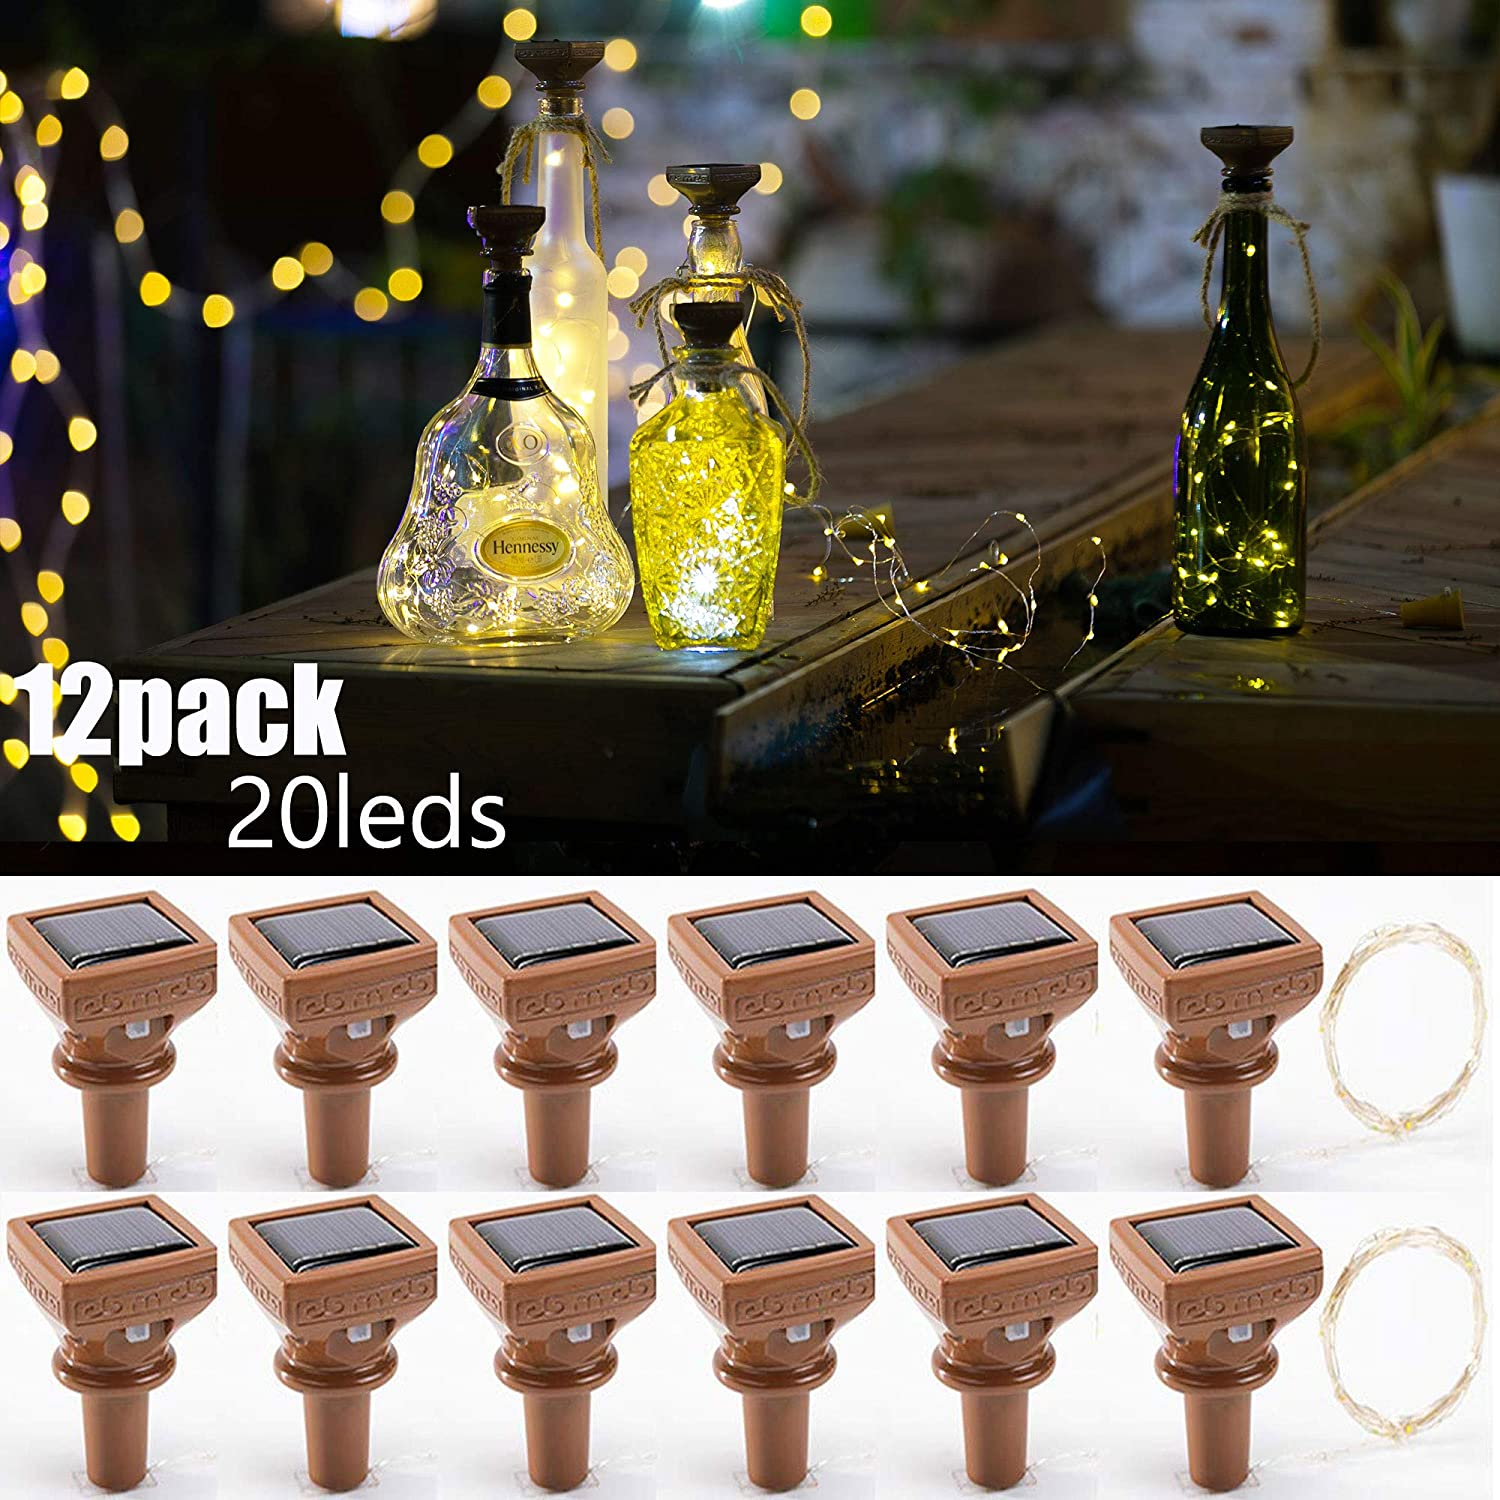 Upgraded 12 Pack Solar Wine Bottle Lights,20 LED Starry Cork Lights Solar Operated Mini Copper String Lights for Wine Bottles with Cork Christmas,Outdoor,Wedding Decor(Warm White)